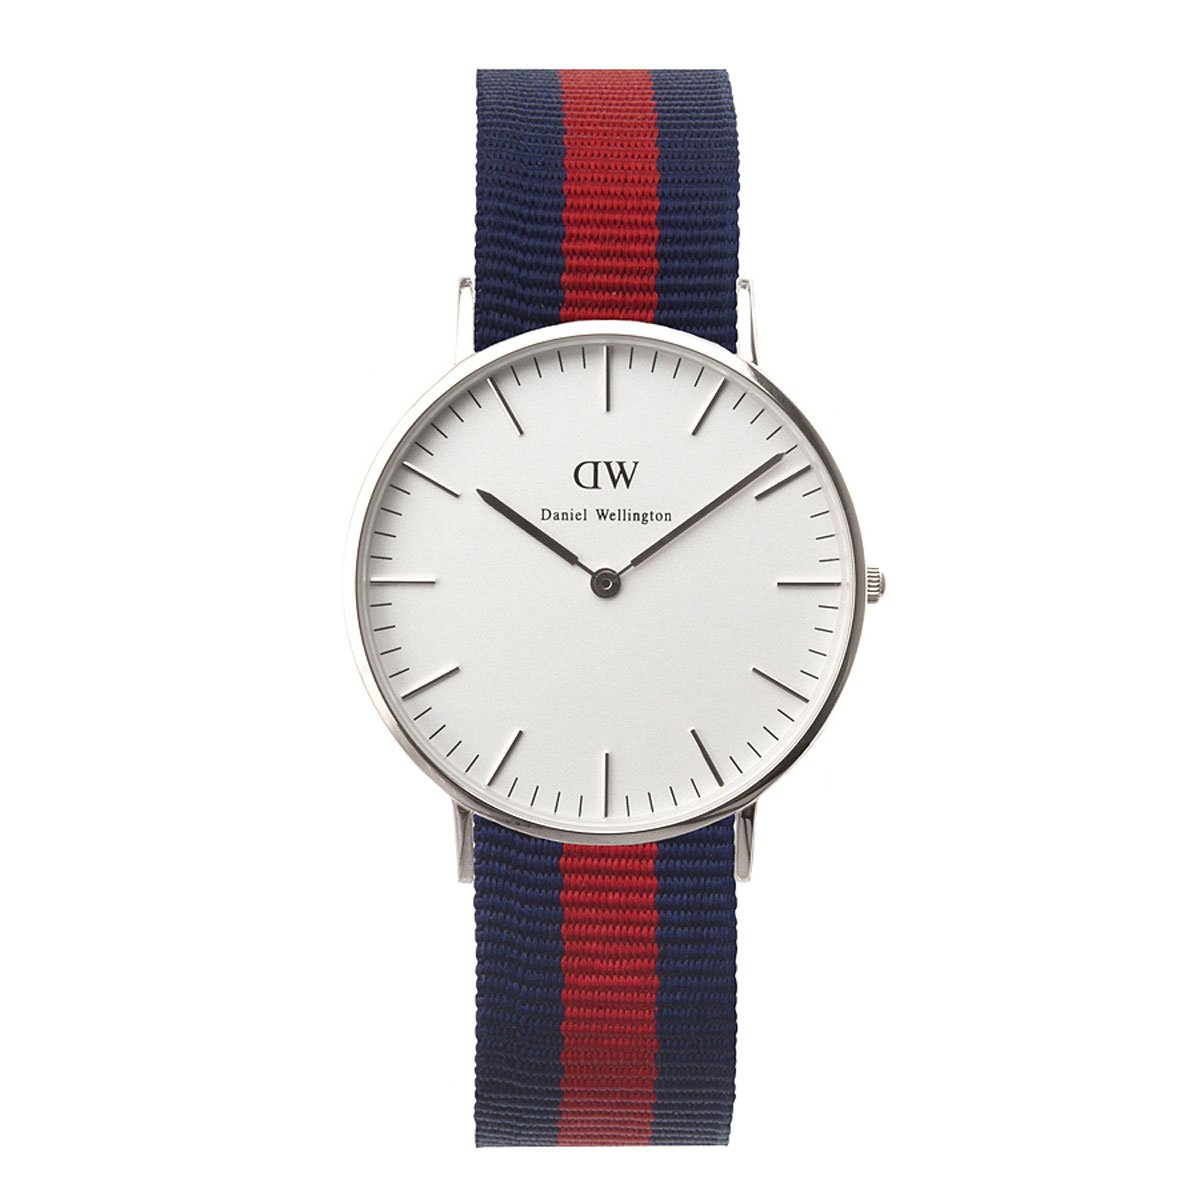 Amazon.com: Daniel Wellington Womens 0601DW Analog Display Japanese Quartz Multi-Color Watch: Daniel Wellington: Watches